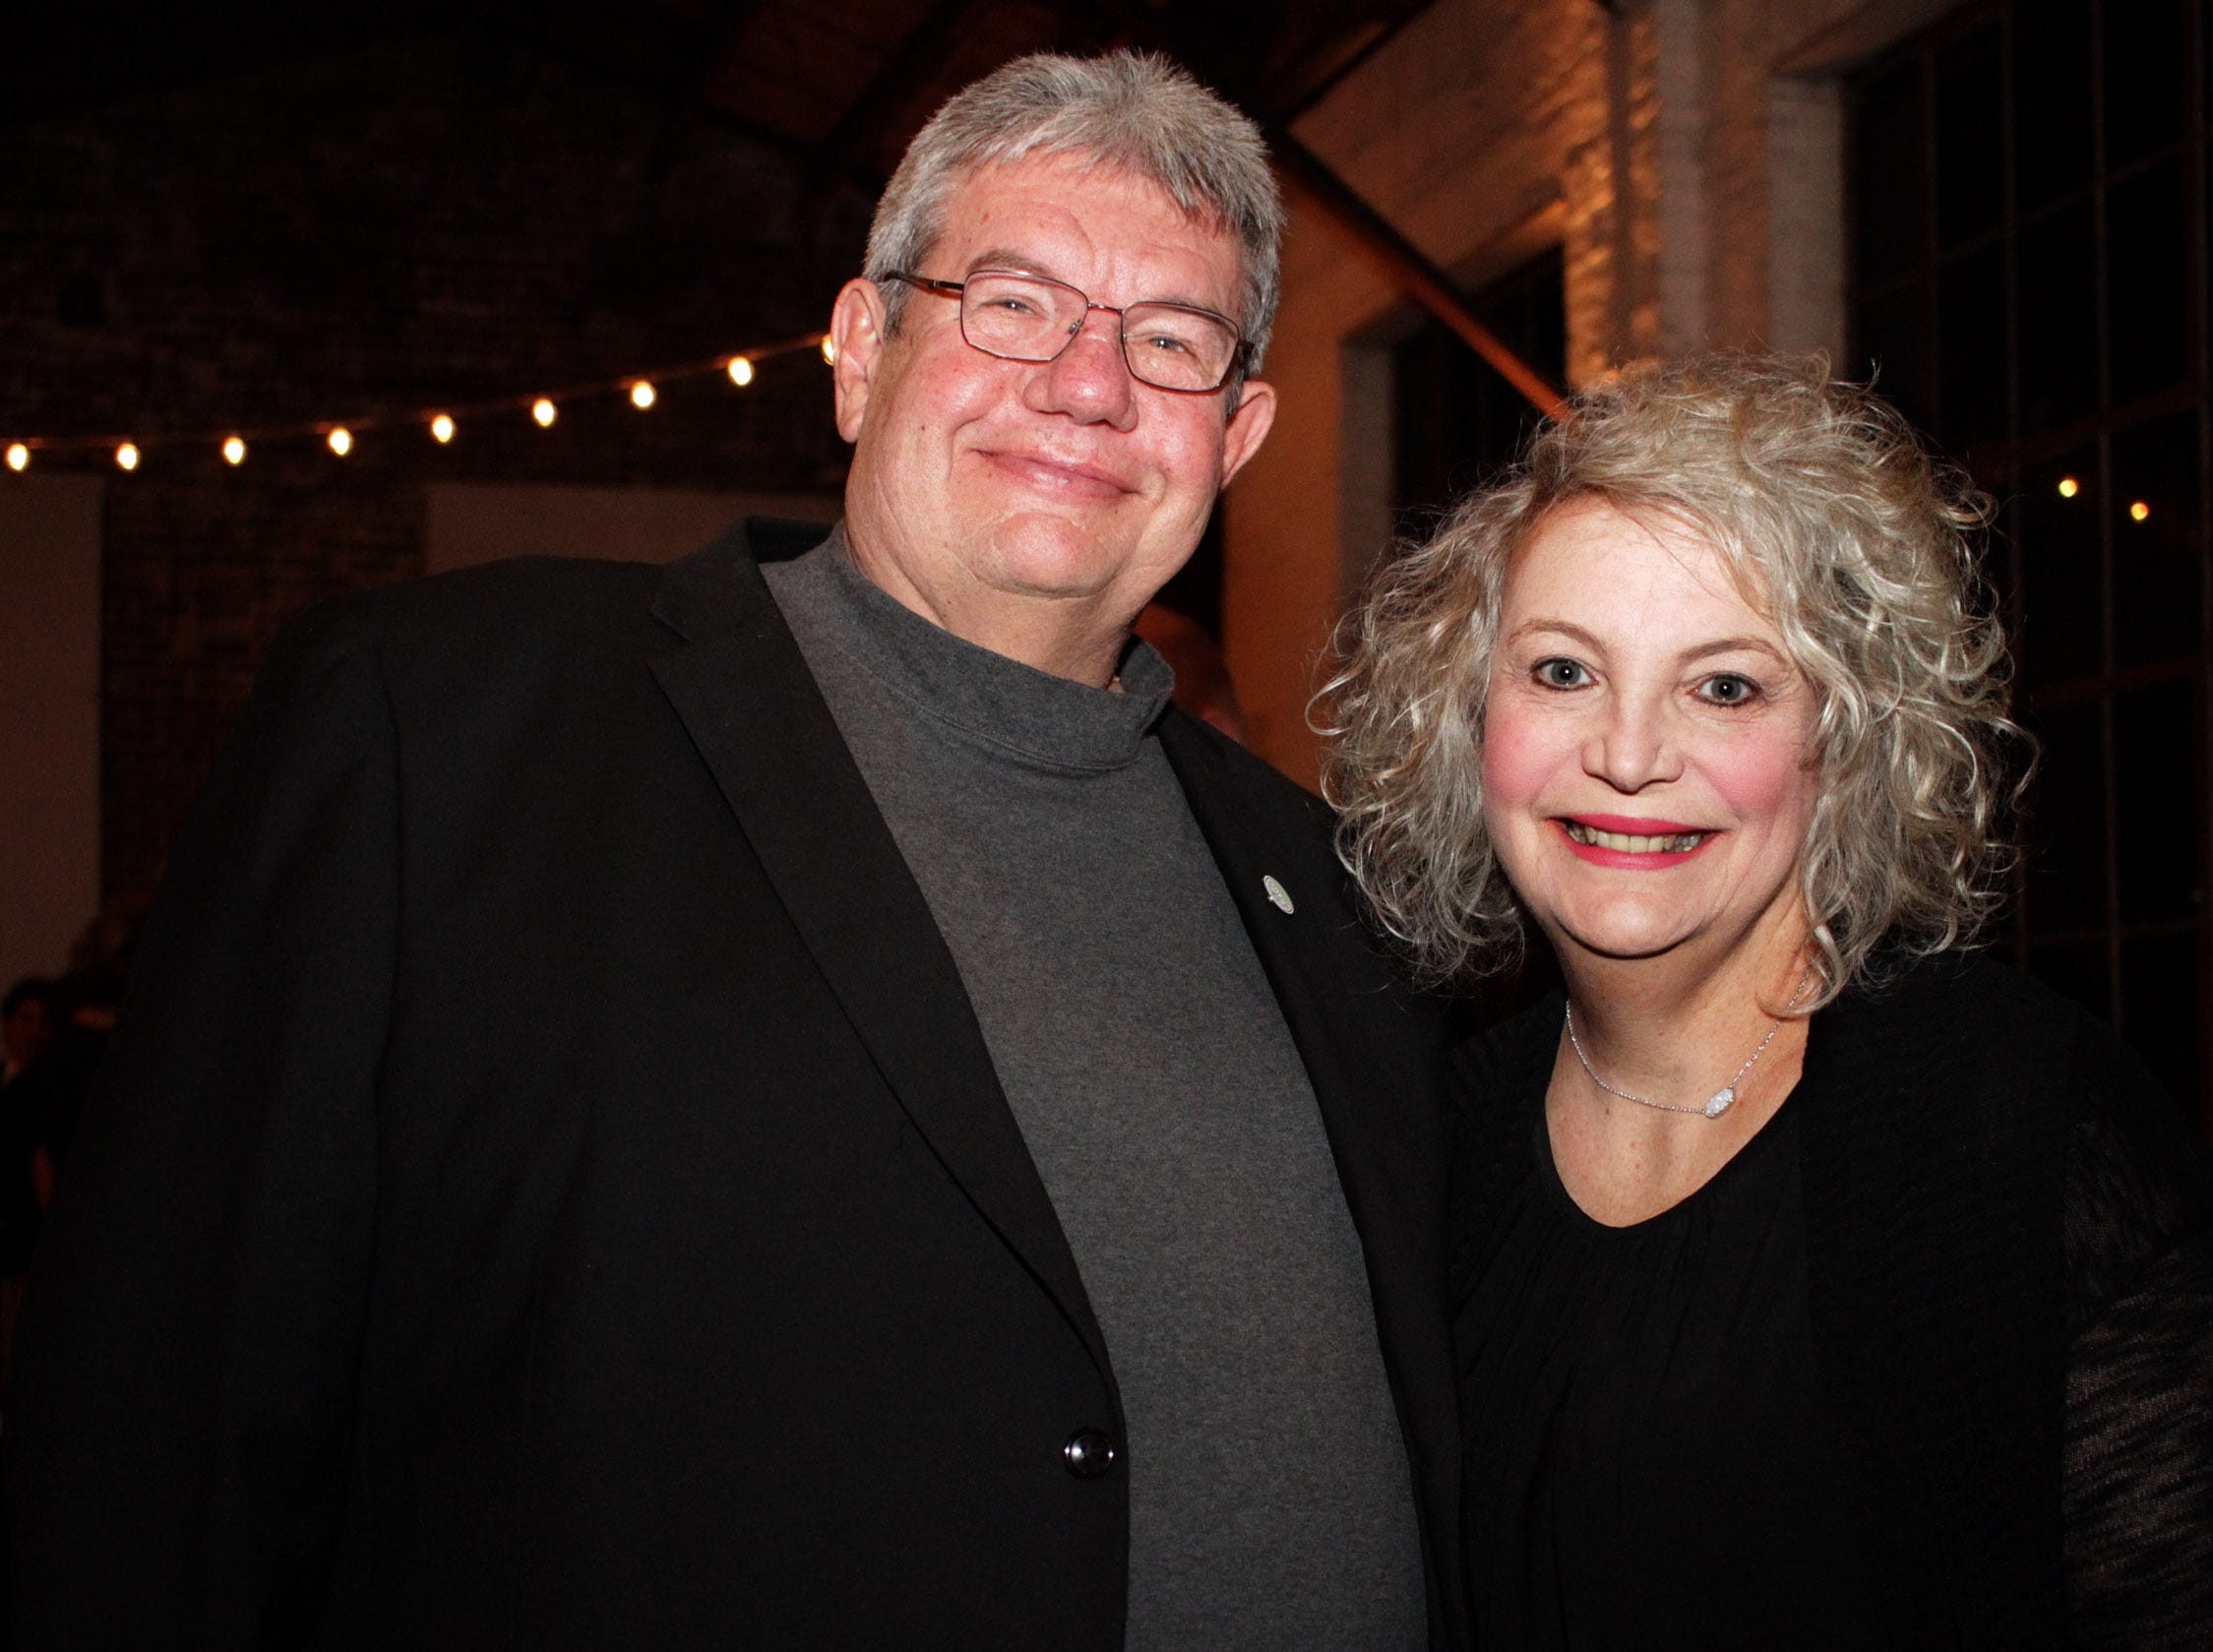 Jimmy and Teresa Overton at the Green and Gold Gala benefitting Gallatin High School on Saturday, March 9, 2019.